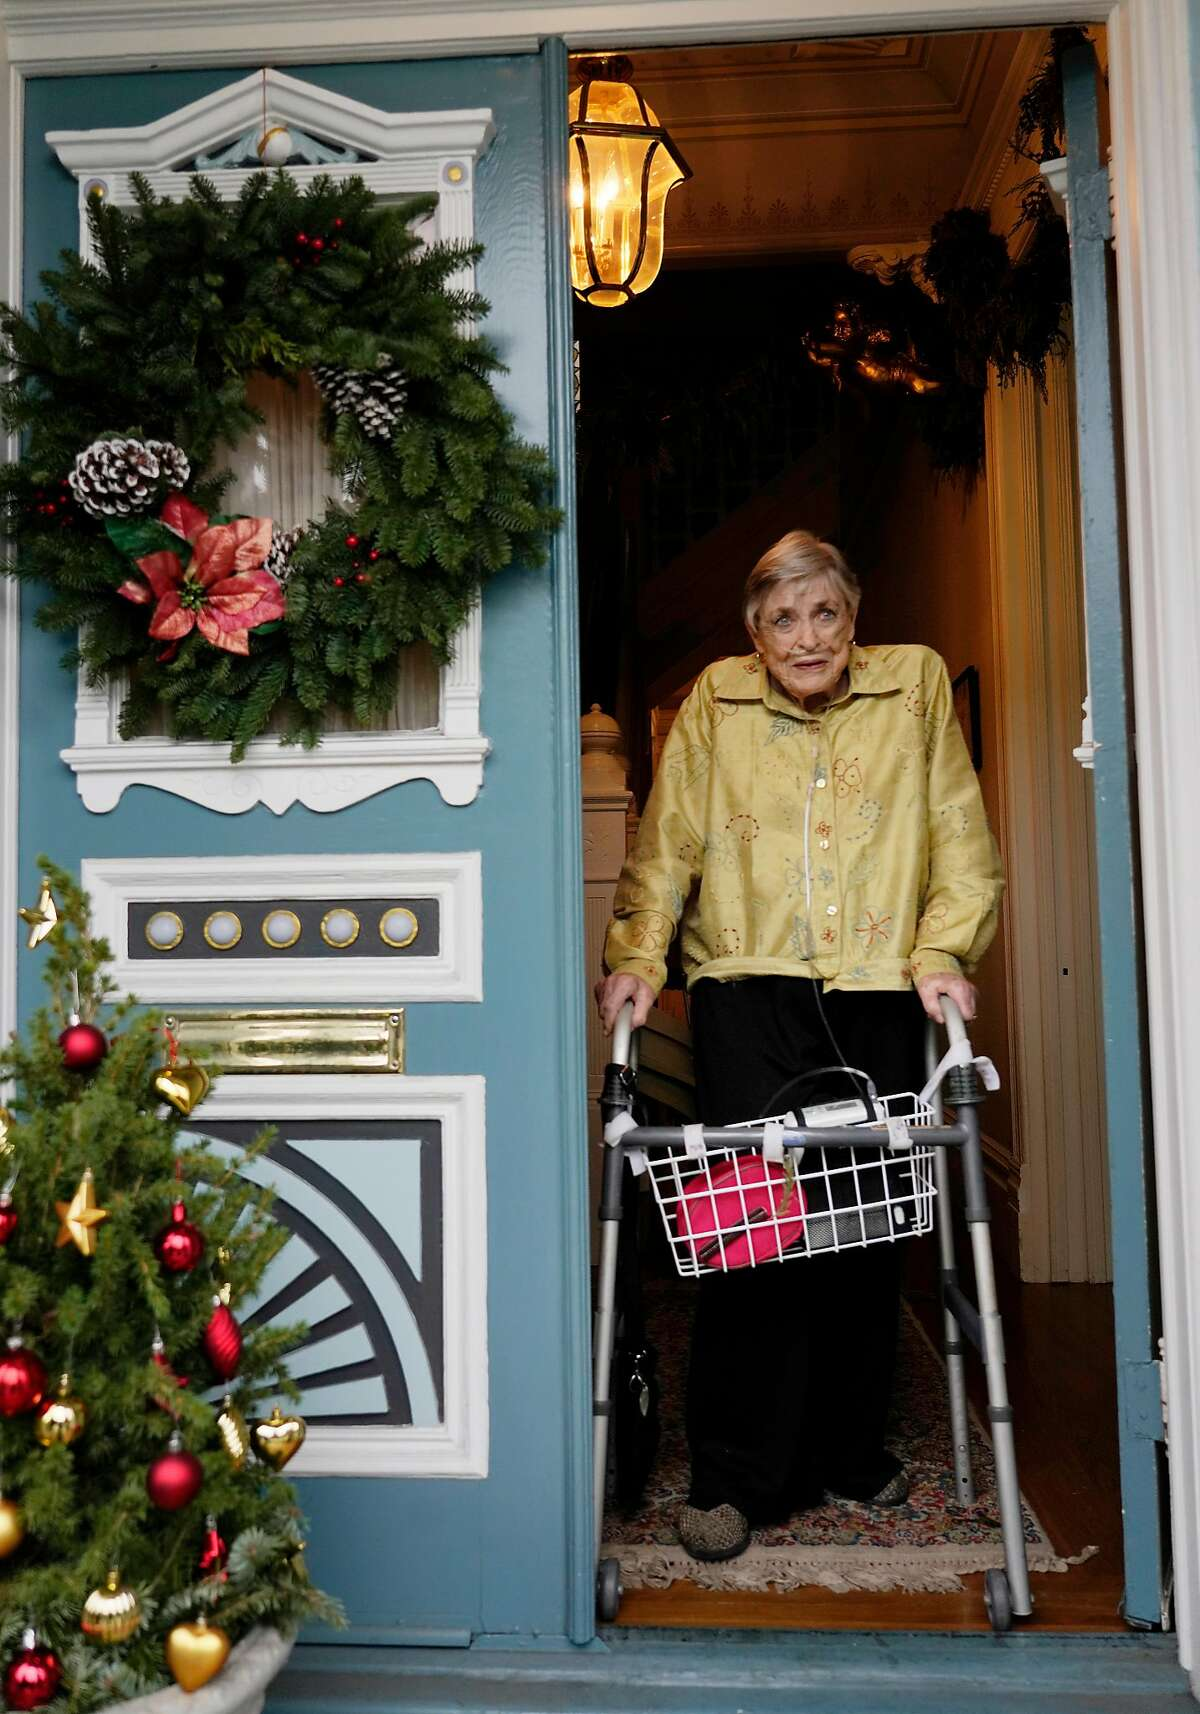 Catherine Sheehan Horsfall, who lives in one of the Painted Ladies, stands for a portrait in the doorway of her home on Tuesday, December 4, 2018 in San Francisco, Calif.